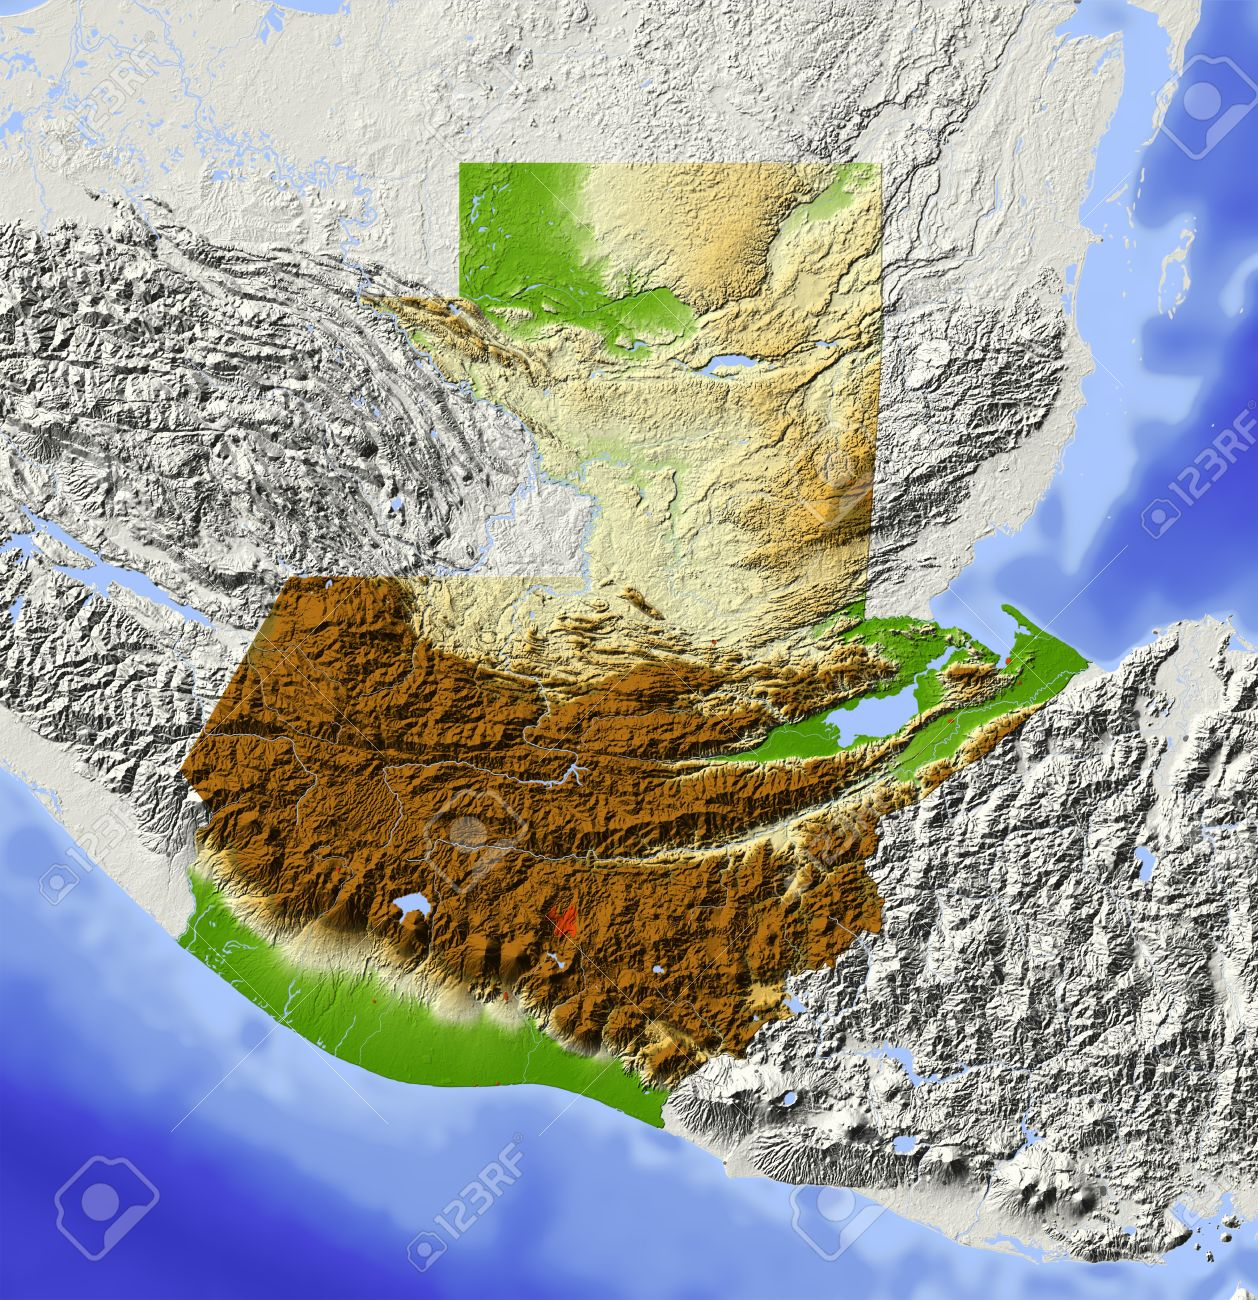 Guatemala. Shaded relief map. Surrounding territory greyed out. Colored according to elevation. Includes clip path for the state area.Projection: MercatorExtents: -93/-87.5/13/18.5Data source: NASA - 10816970